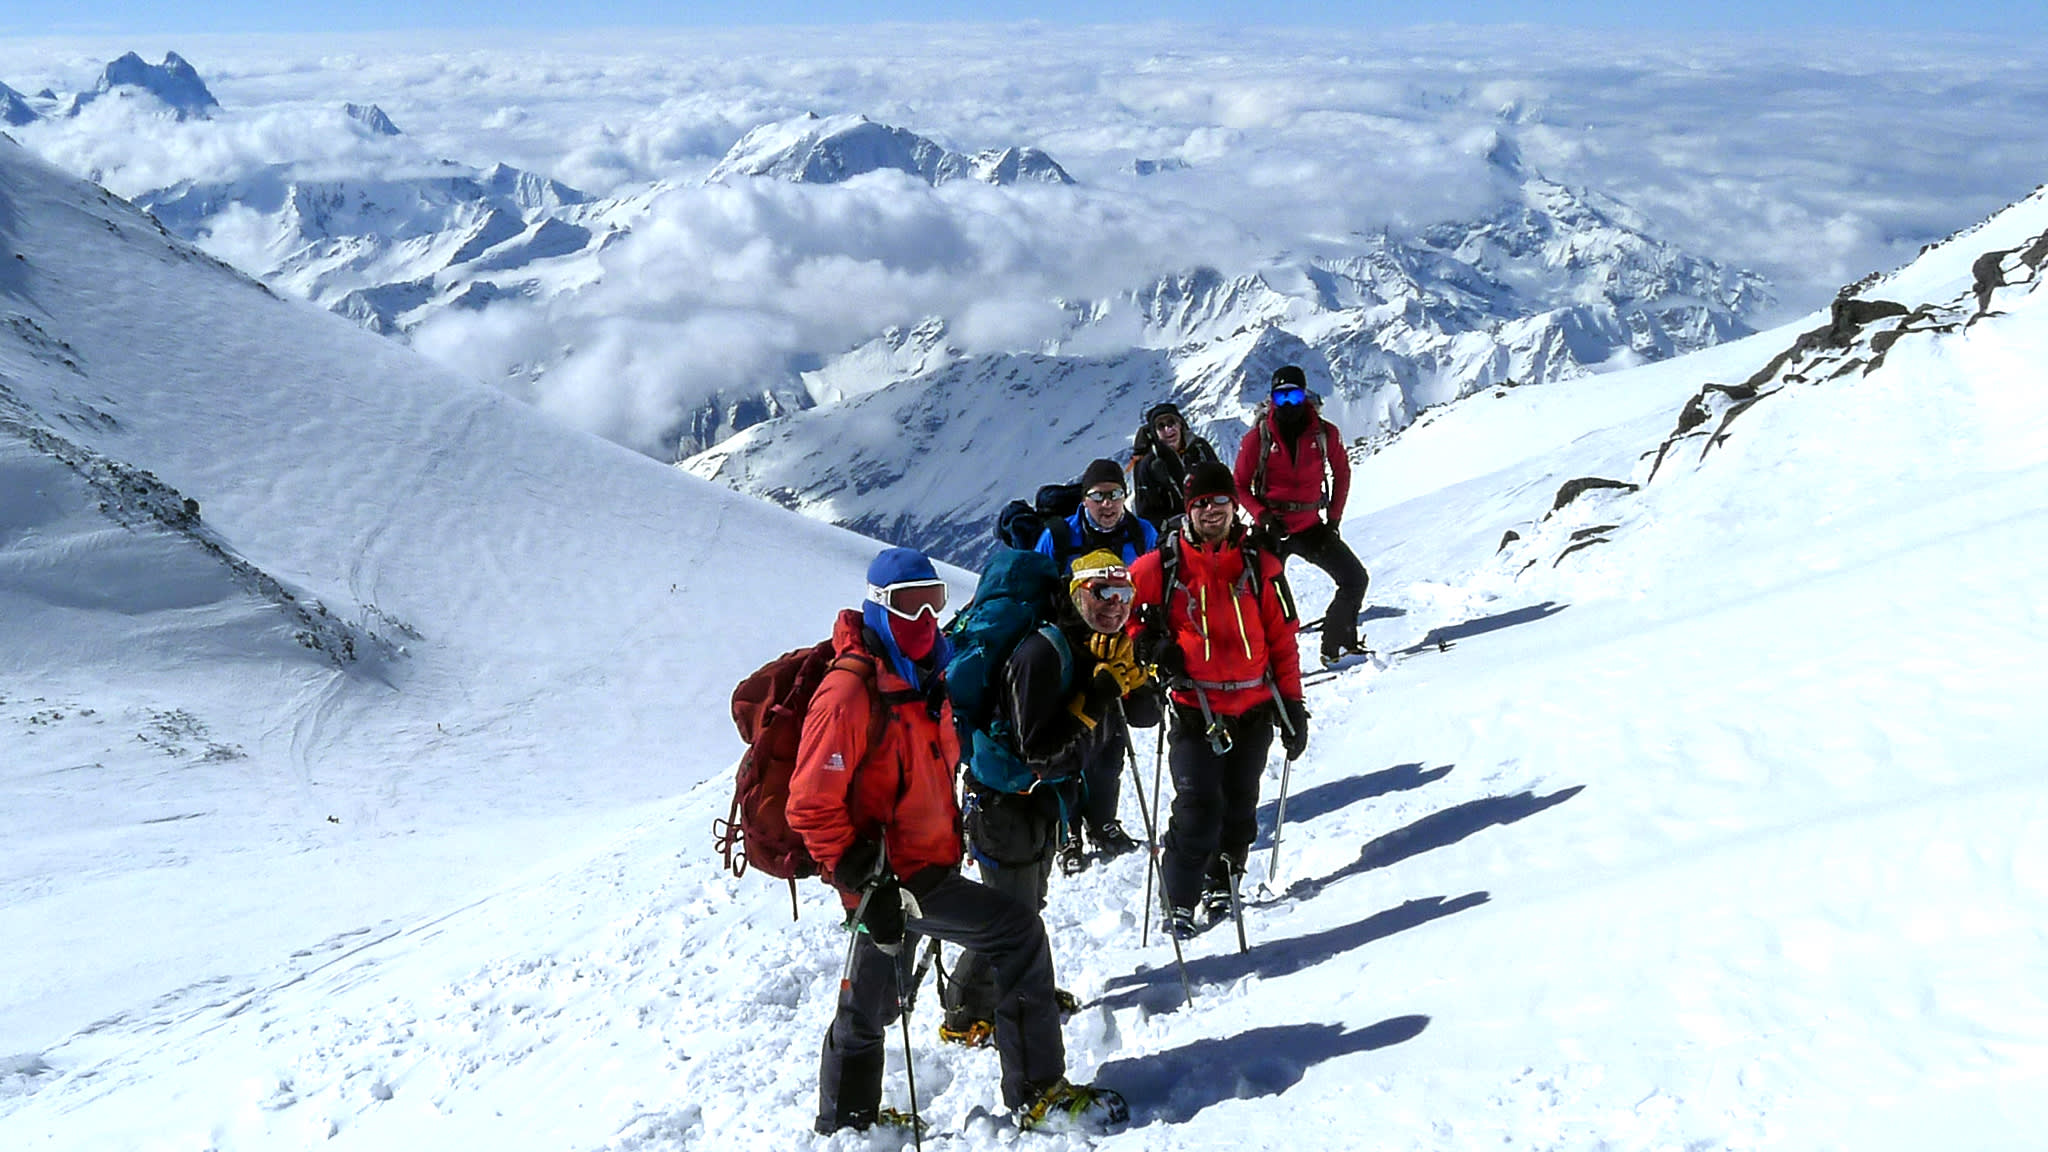 Skiing Mount Elbrus — Europe's highest peak